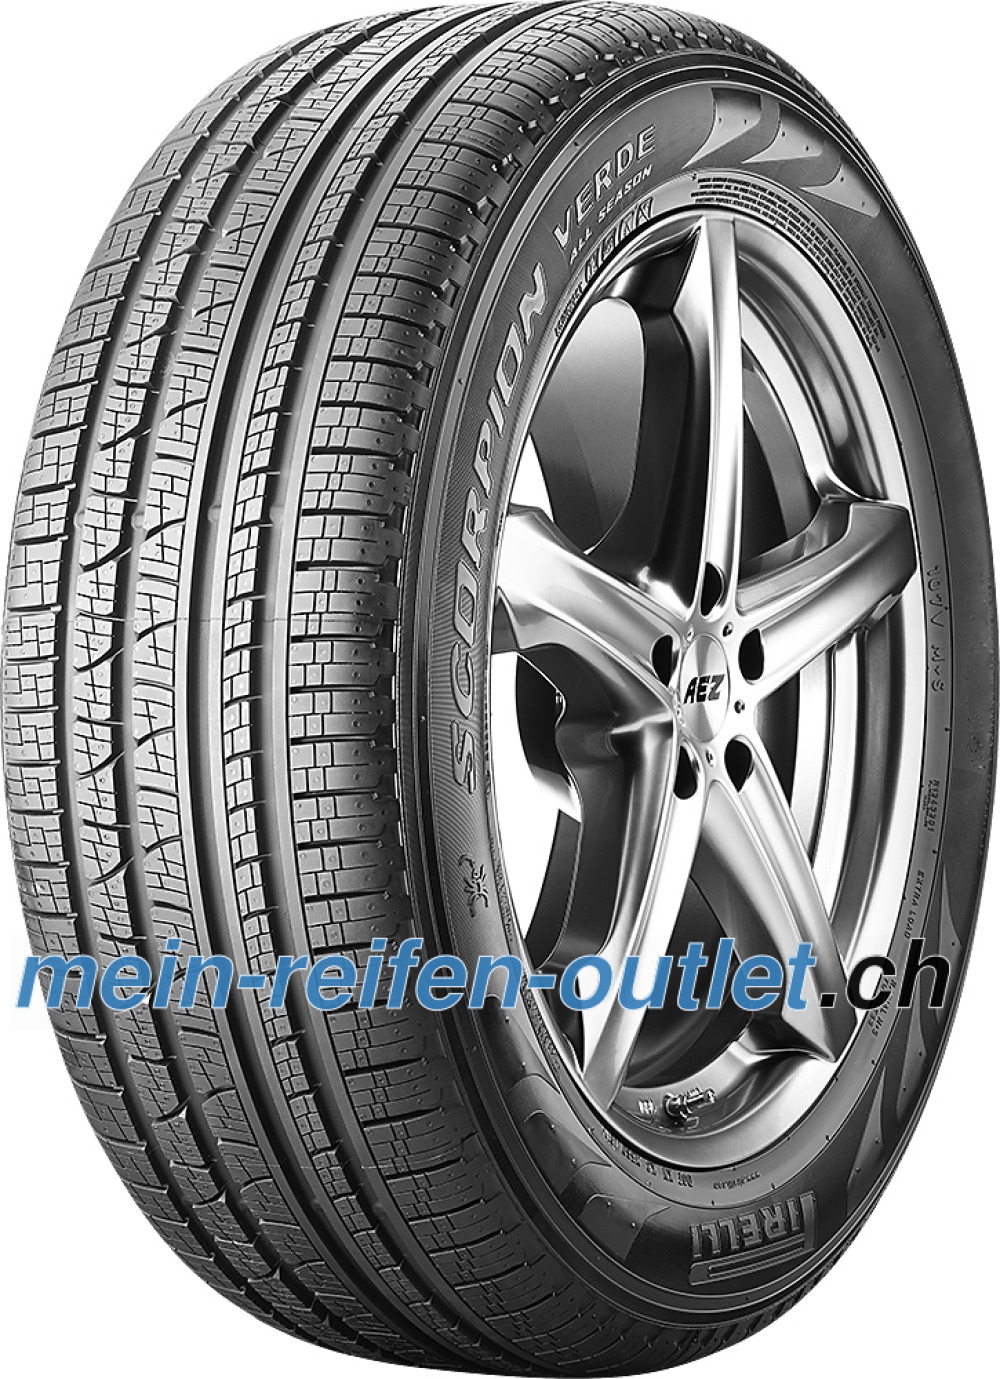 Pirelli Scorpion Verde All-Season ( 265/50 R19 110W XL , MGT )